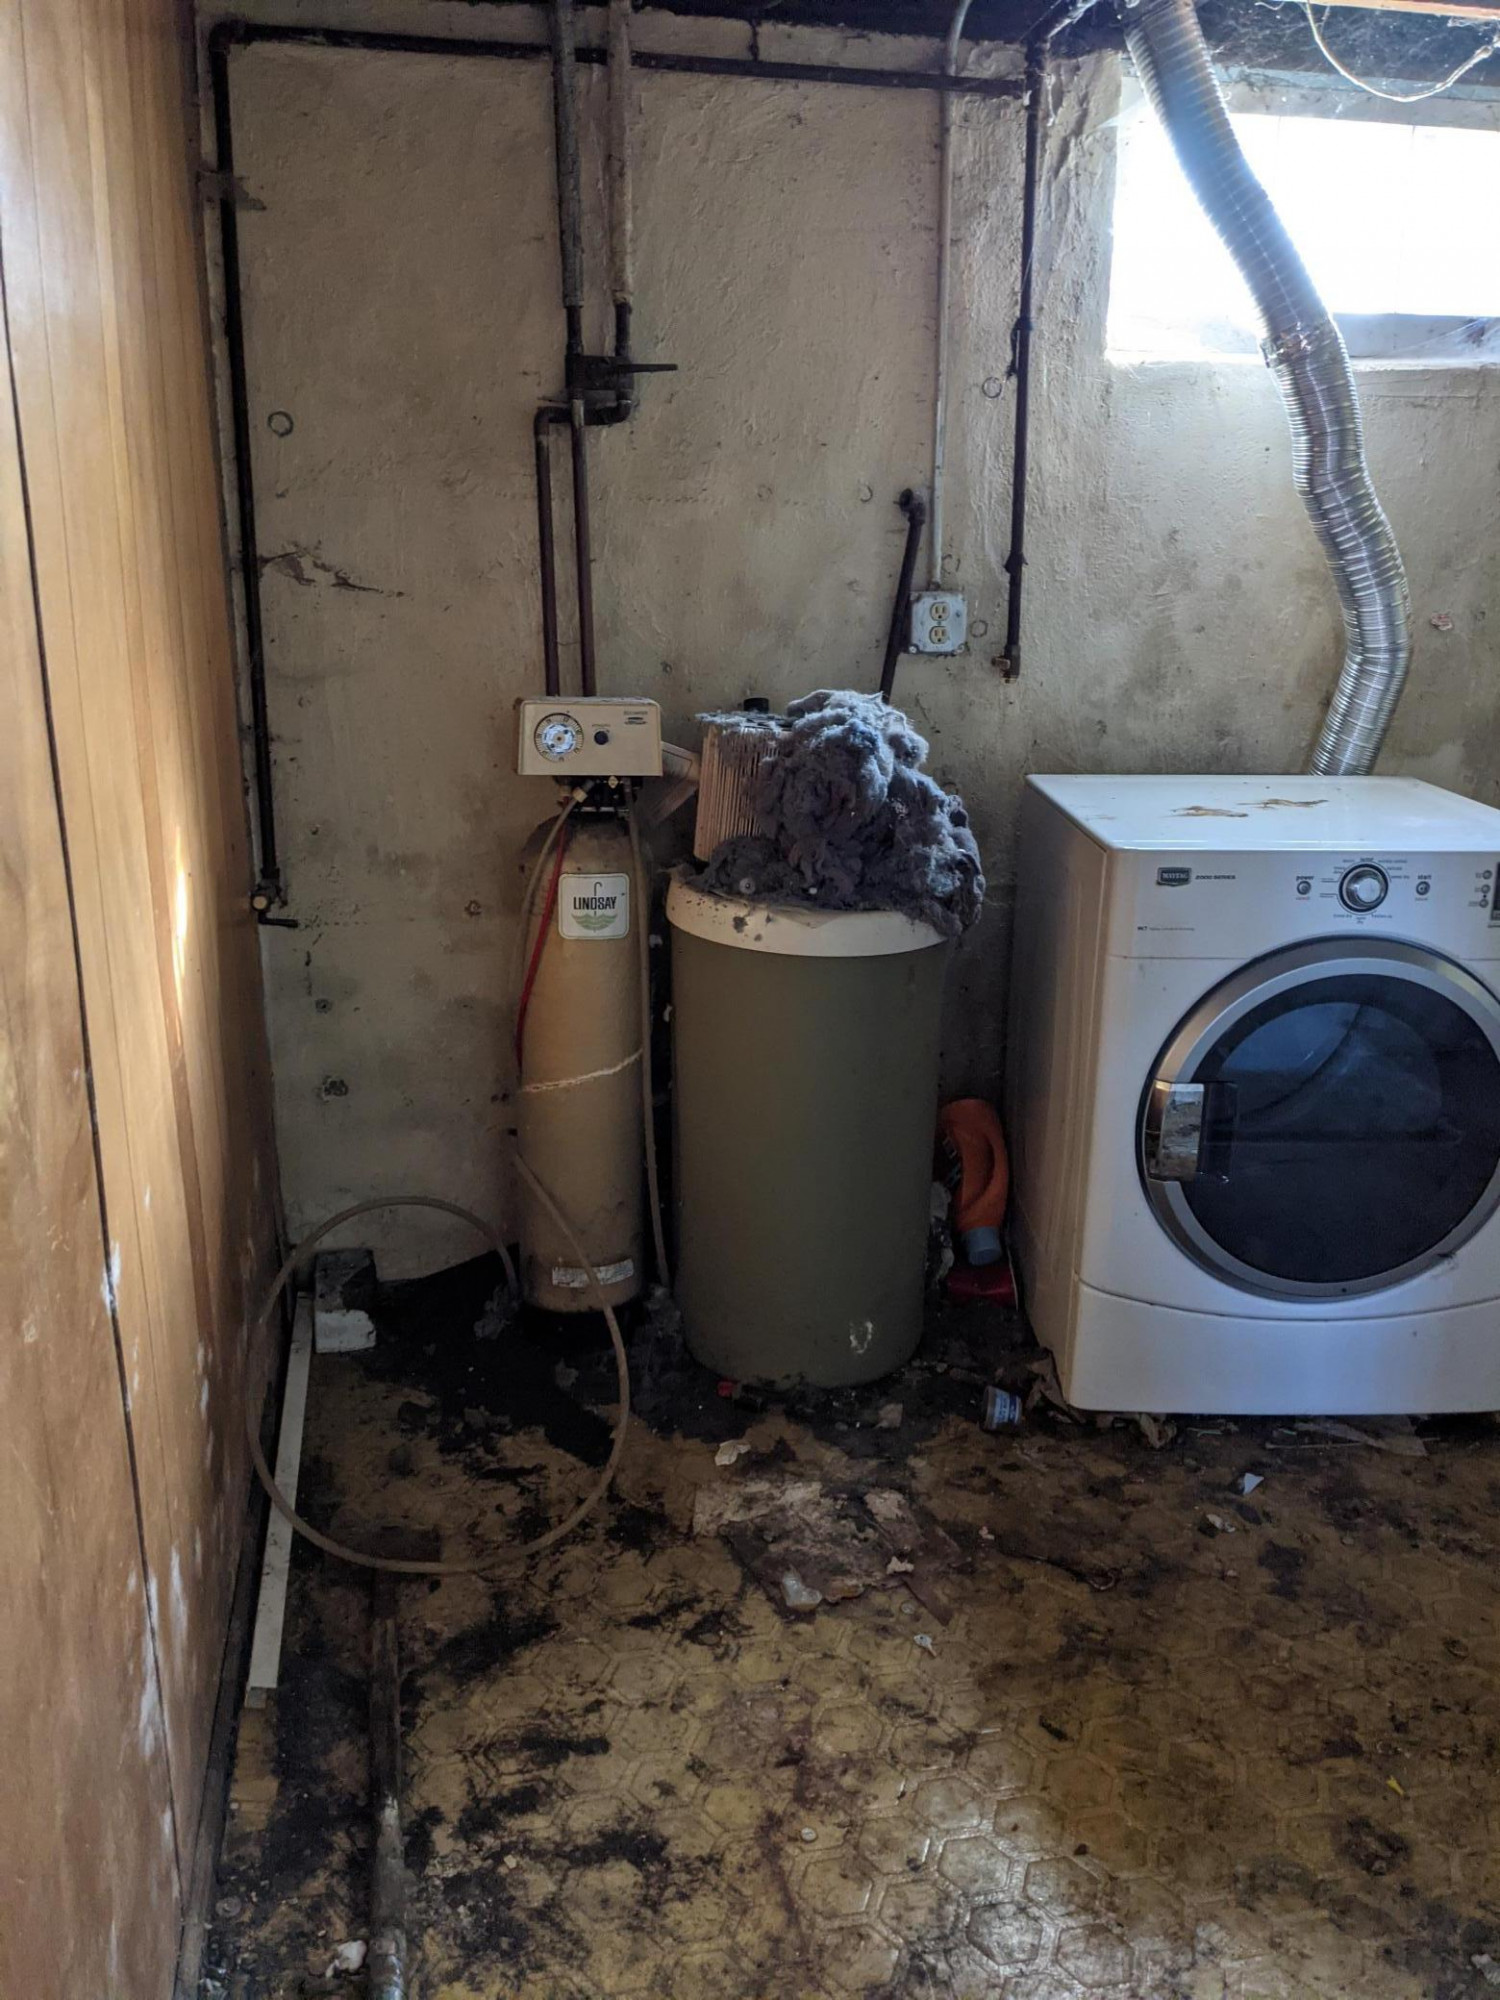 Laundry room – appliances probably do not work